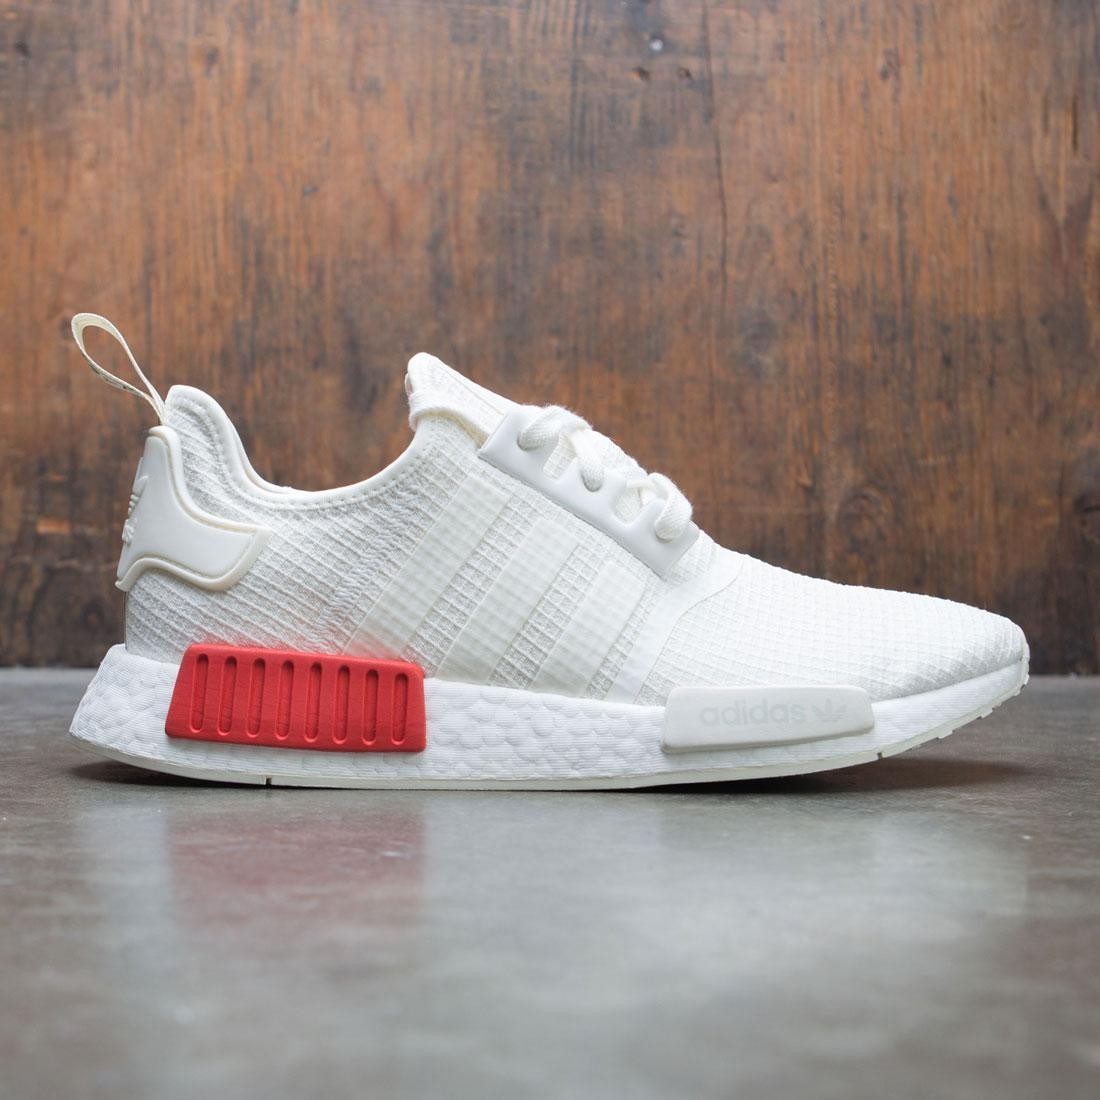 buy popular 5da09 7ea77 Adidas Men NMD R1 (white / off white / lush red)